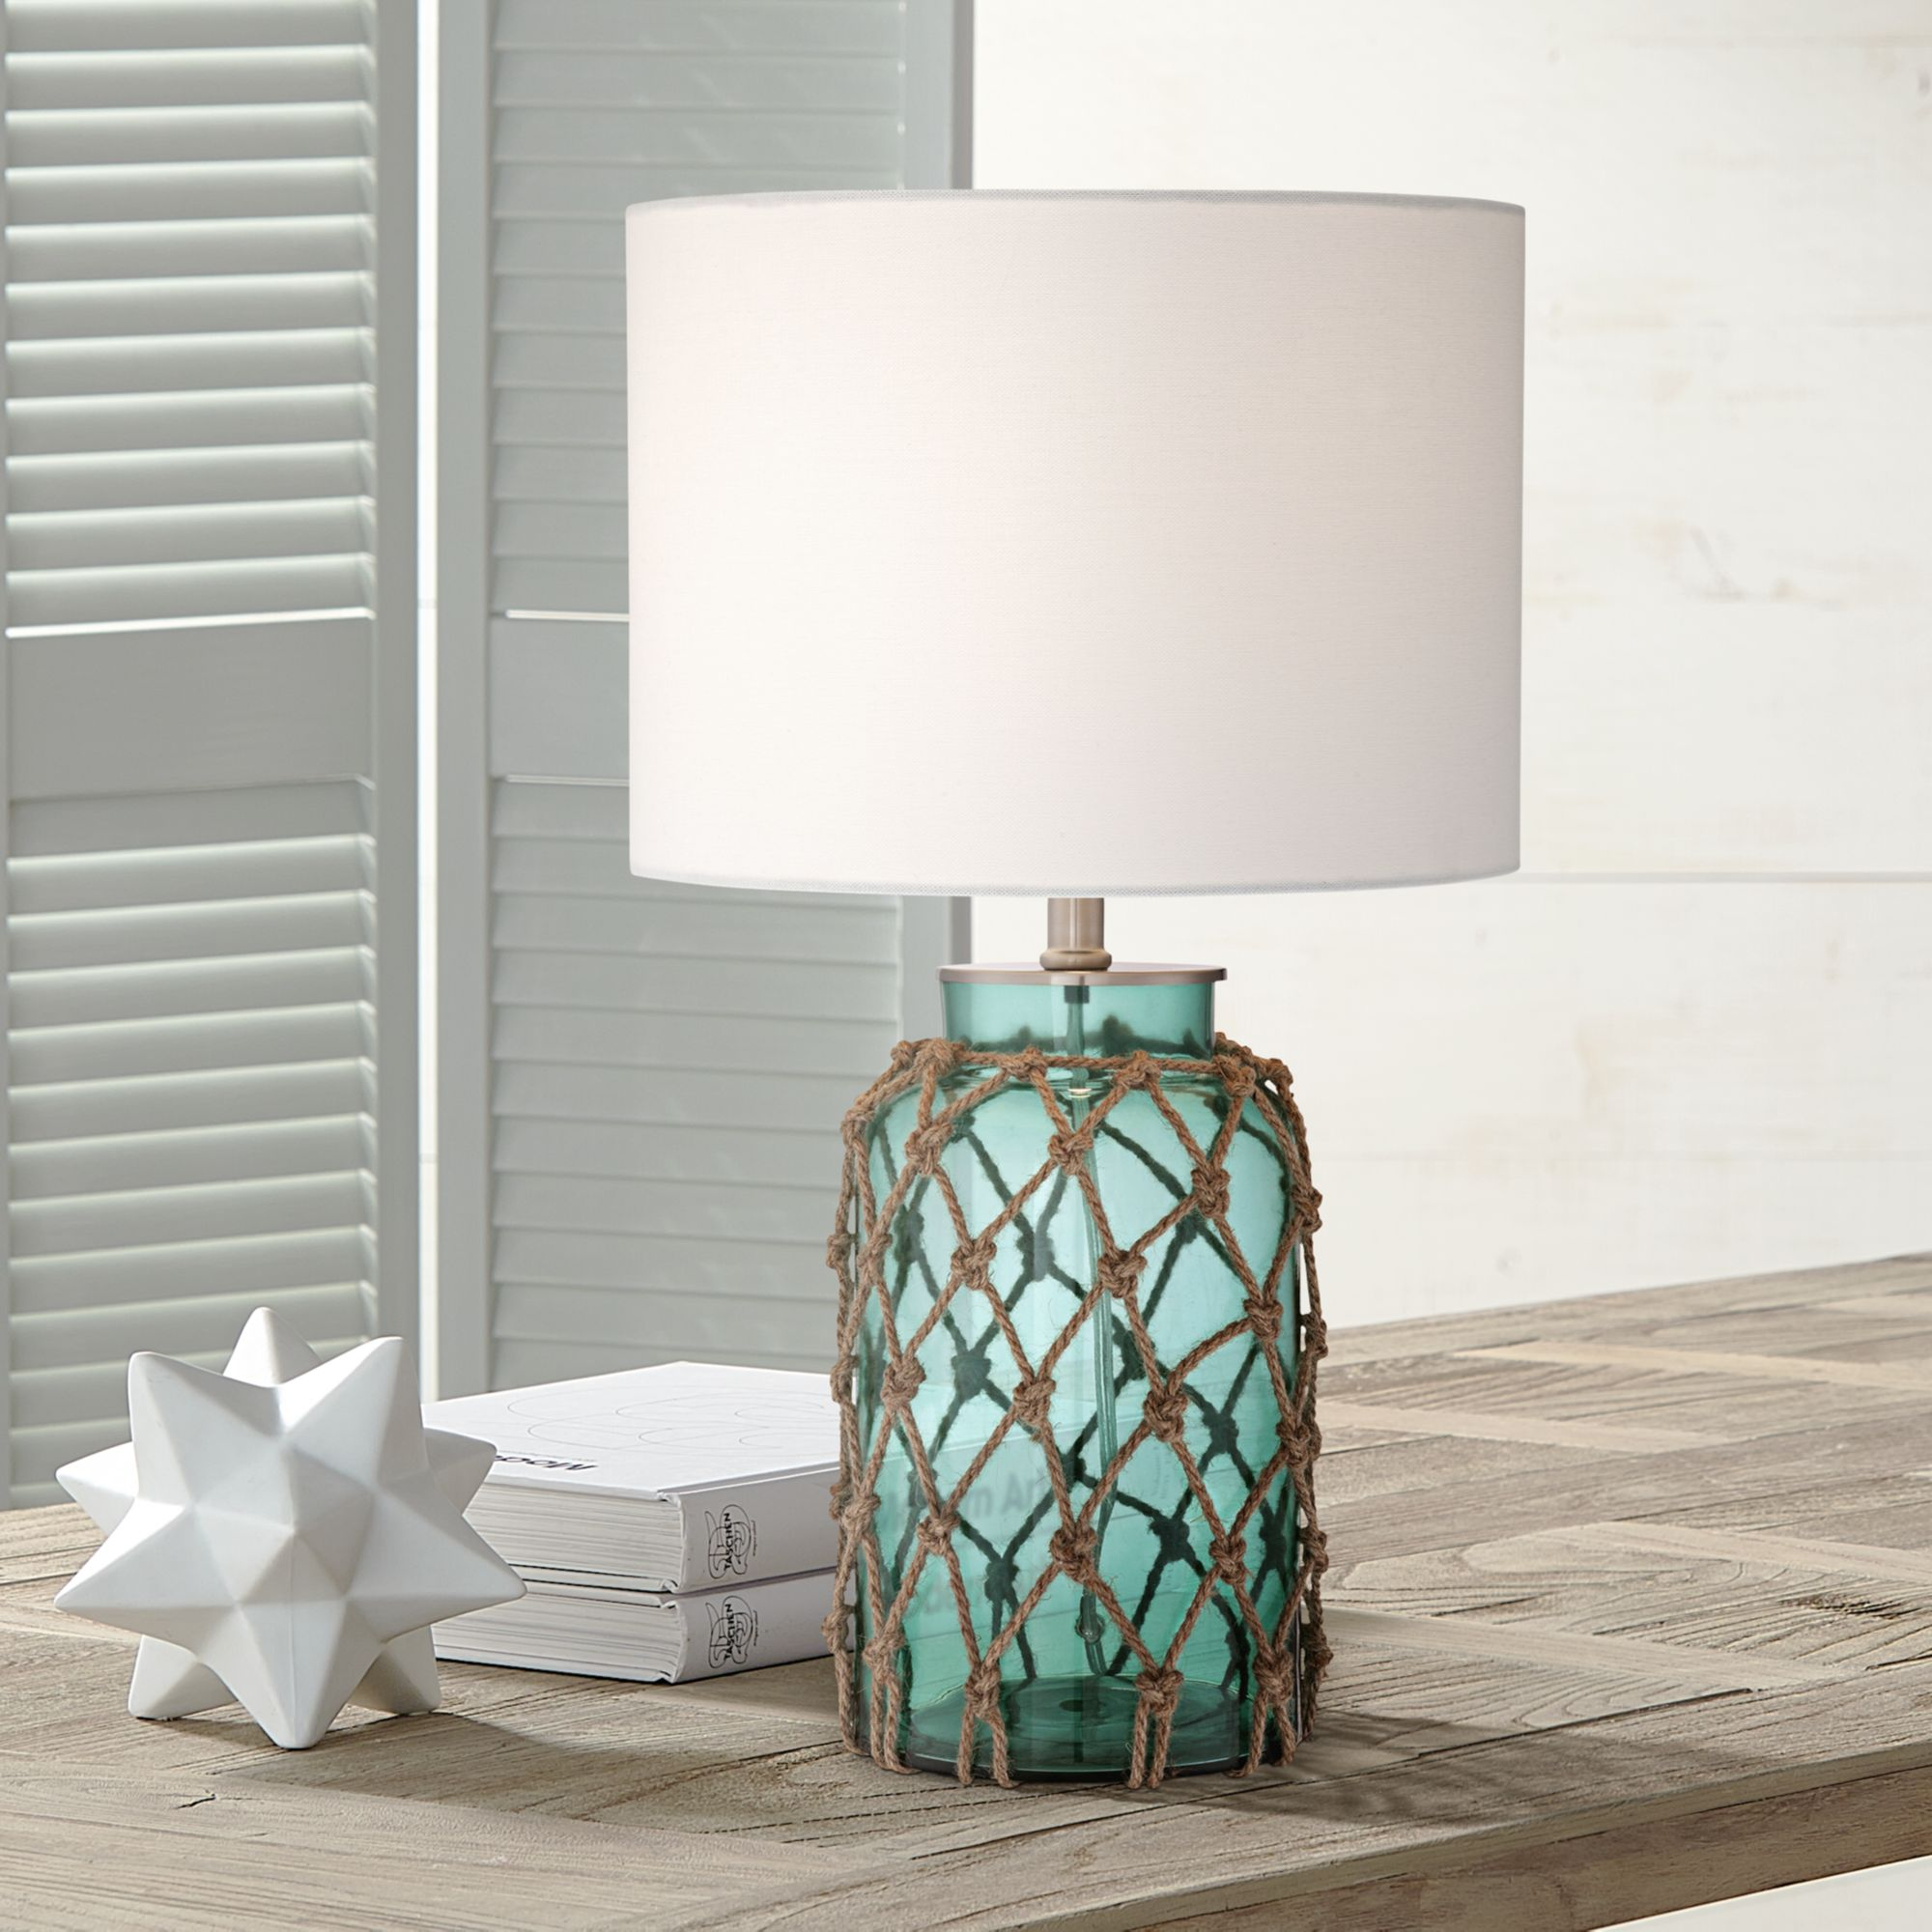 360 Lighting Nautical Accent Table Lamp Coastal Blue Green Glass